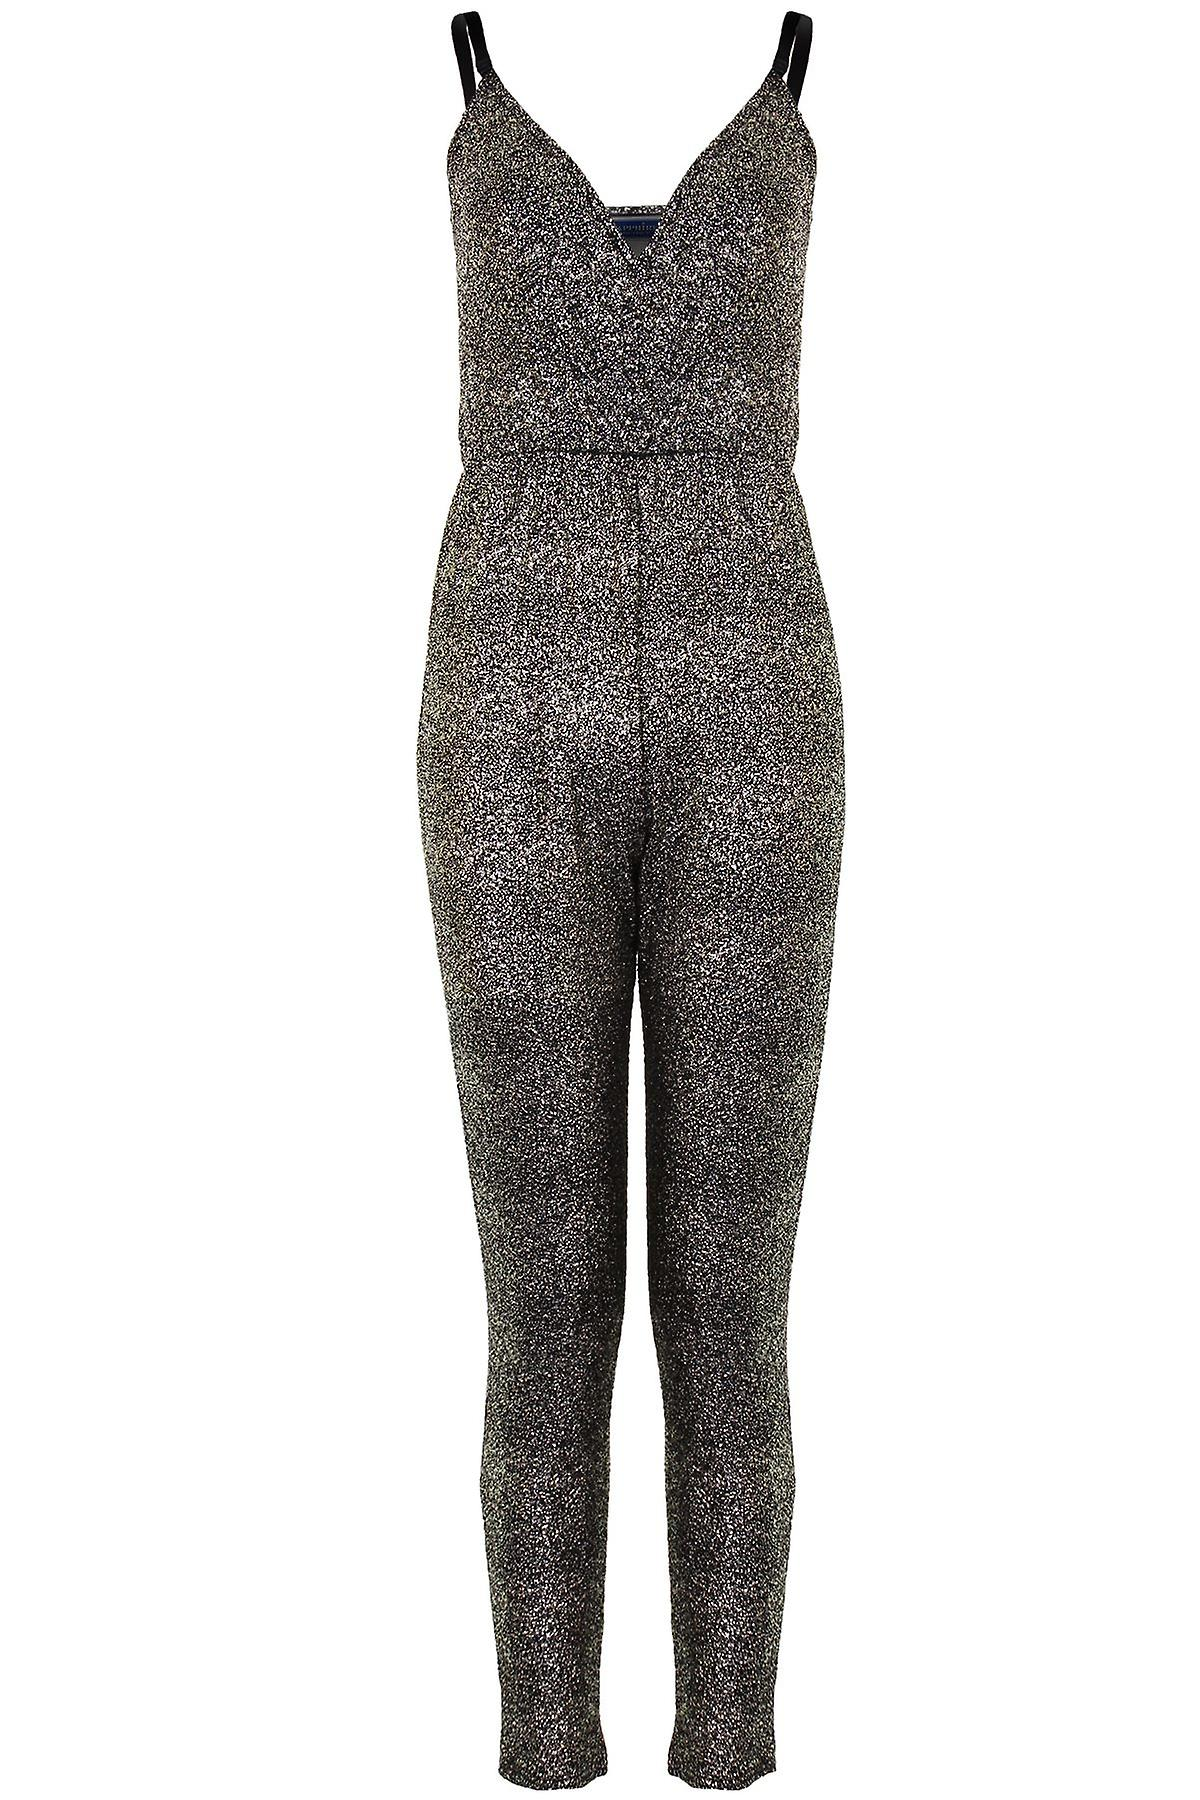 Ladies Adjustable Straps Wrap V Neck Women's Glittery Crinkle All In One Jumpsuit